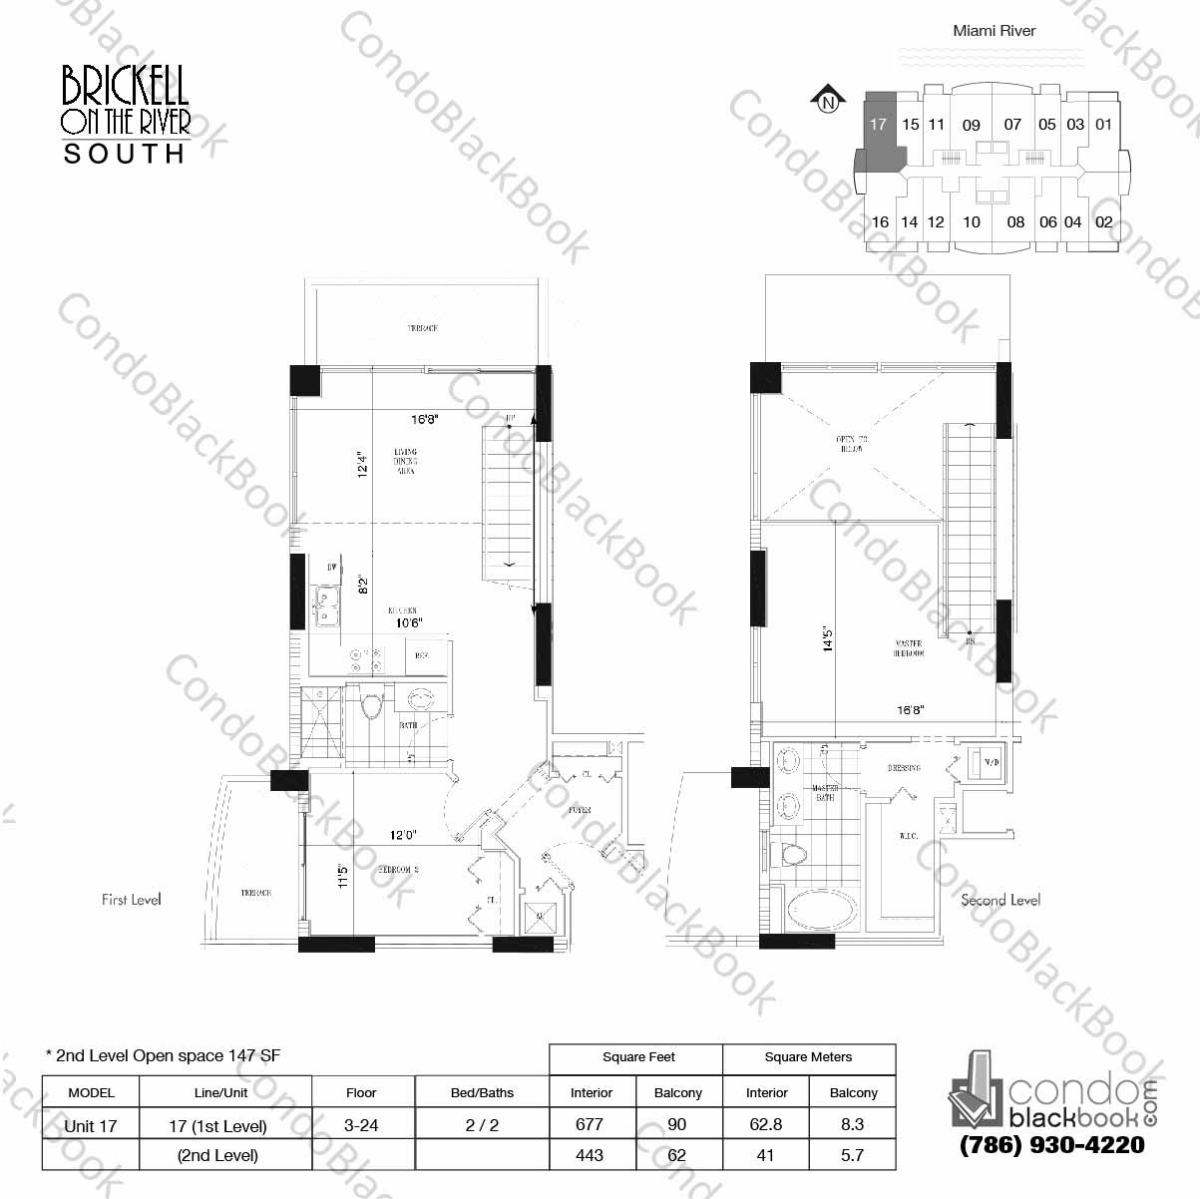 Floor plan for Brickell on the River North Brickell Miami, model Unit 17, line 17, 2/2 bedrooms, 1120 sq ft